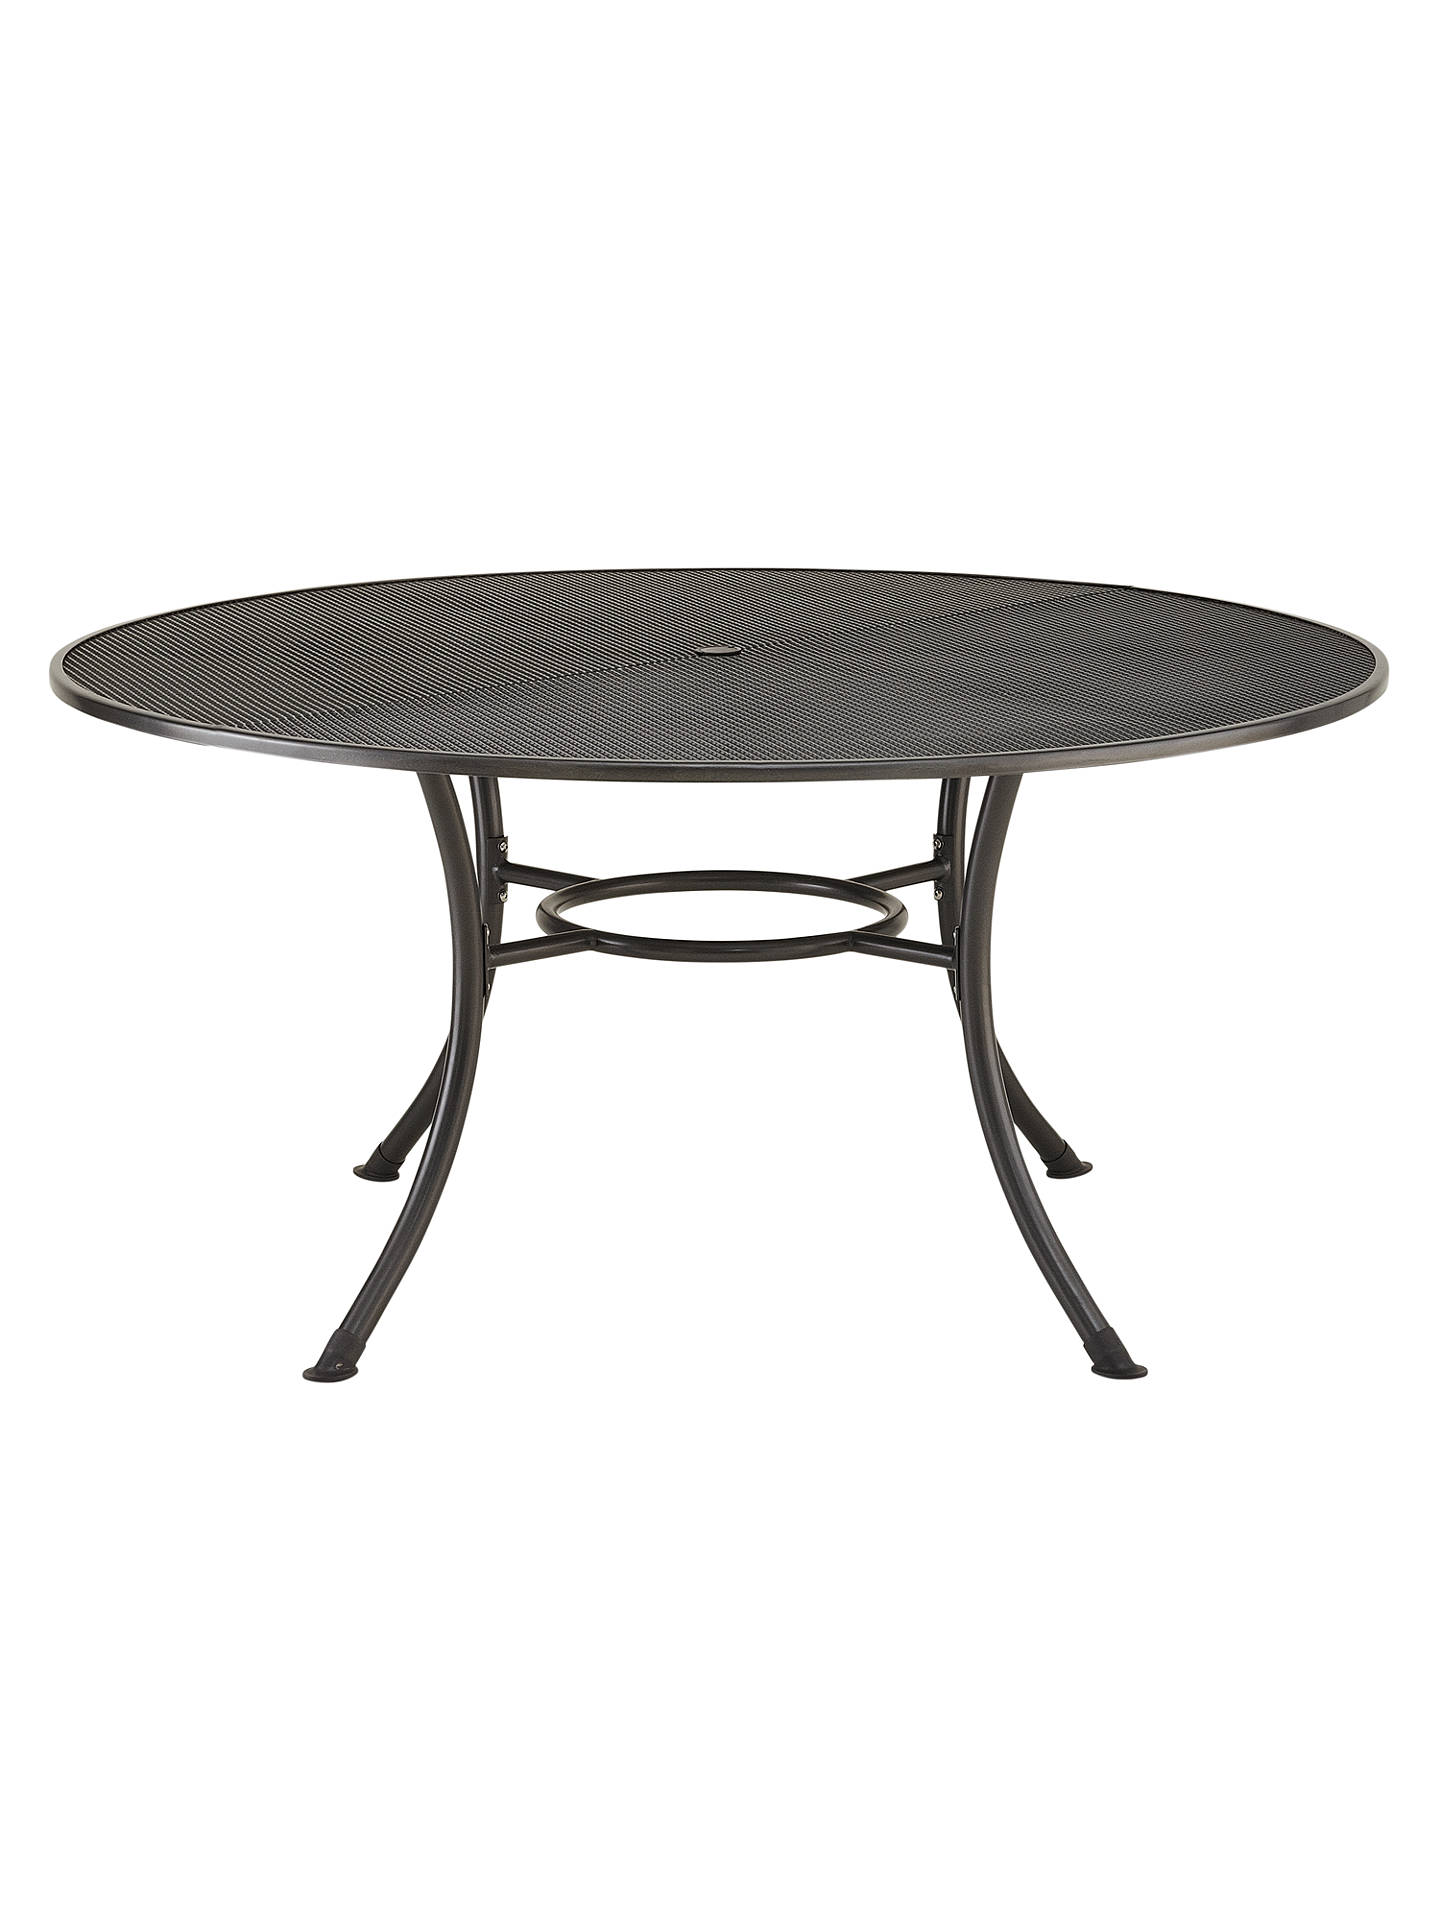 BuyJohn Lewis & Partners Henley by KETTLER Round 6-Seater Garden Dining Table, Dia.150cm, Grey Online at johnlewis.com